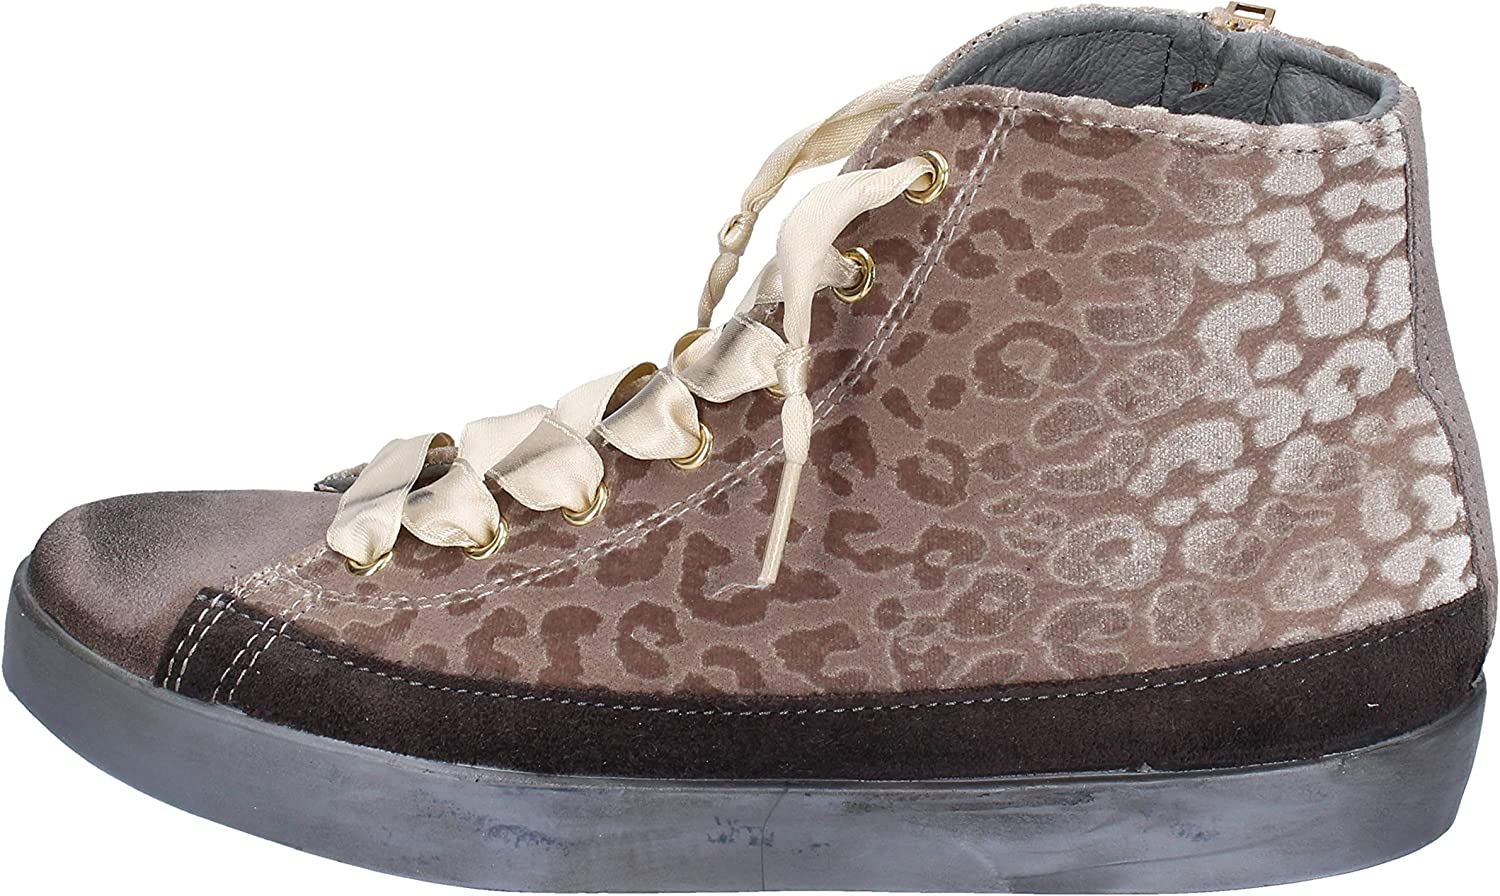 Beverly Hills Polo Club Fashion-Sneakers Womens Suede Beige